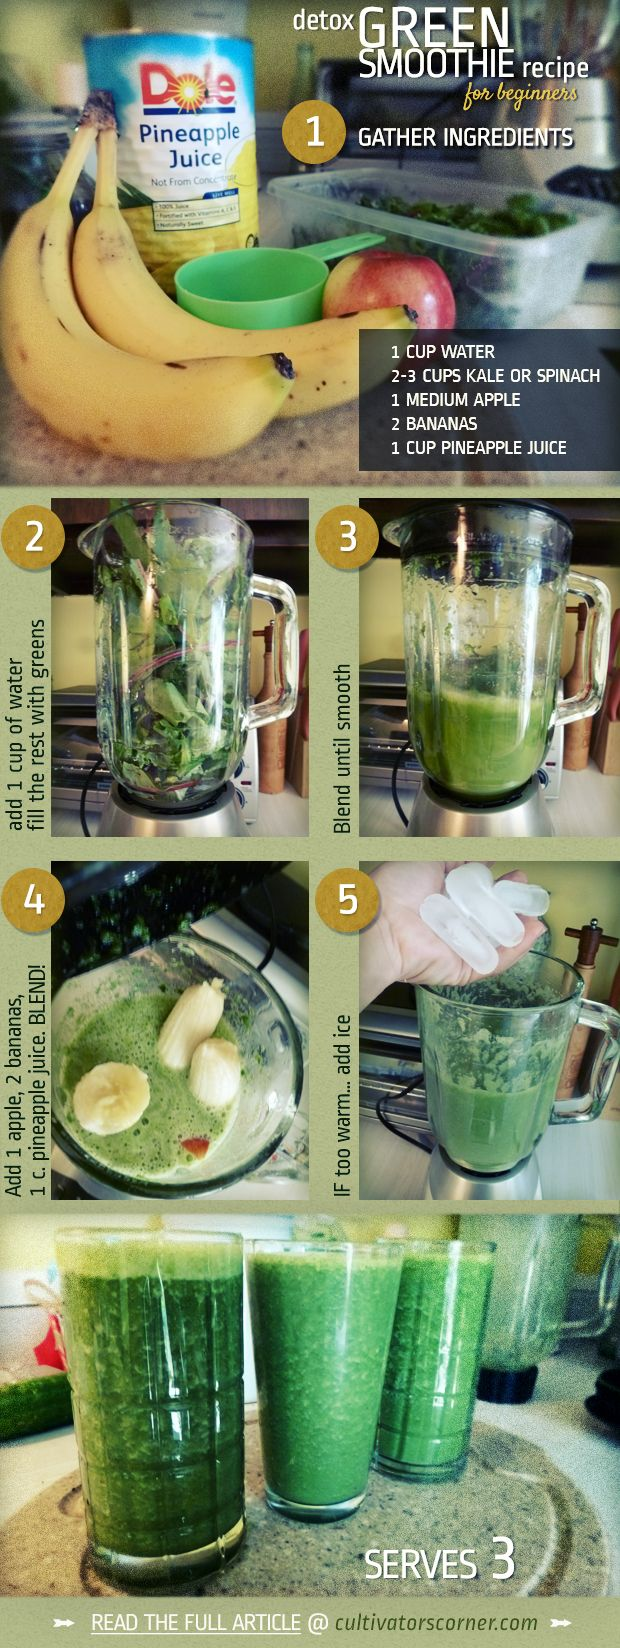 what do DO with that garden. Green Smoothies! Read the full article at http://cultivatorscorner.com/detox-smoothie-recipe-for-beginners-a-no-brainer